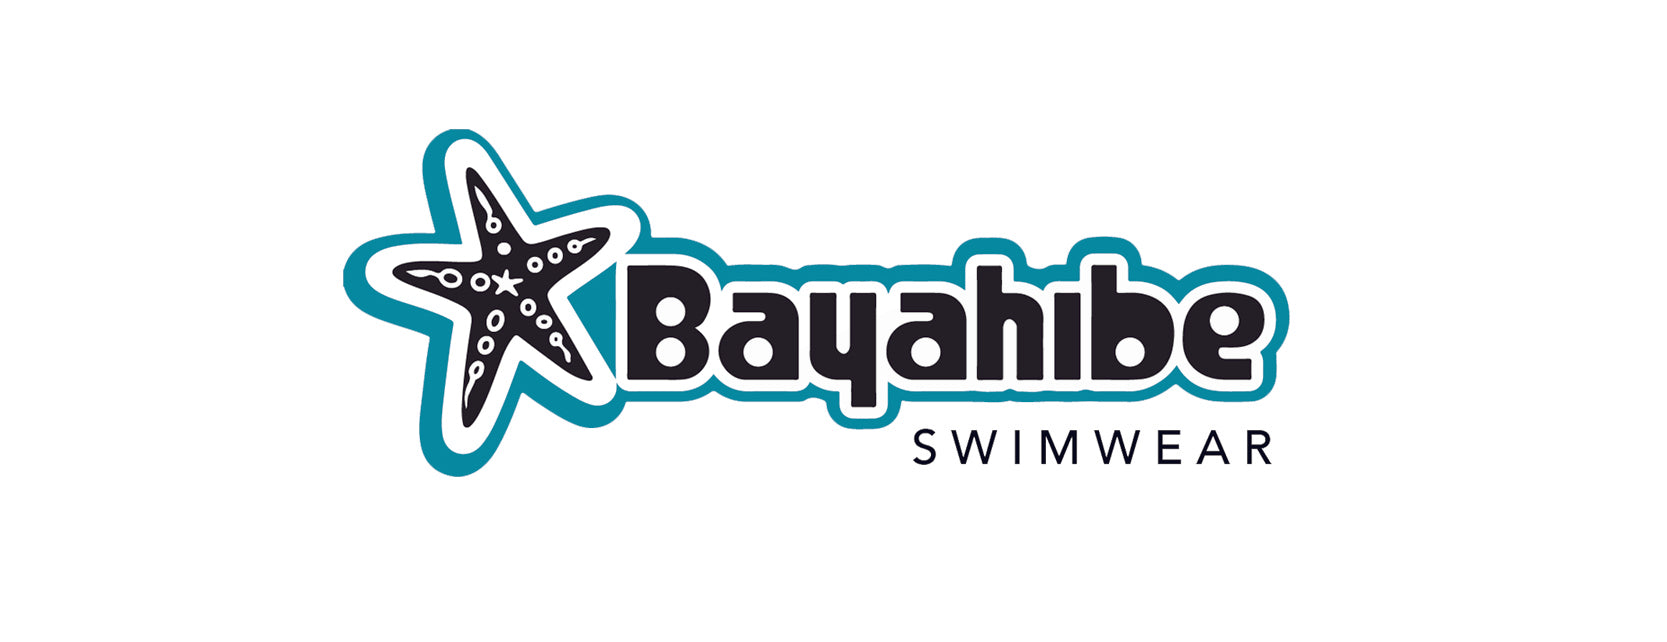 bayahibeswimwear maillots de bain pour hommes